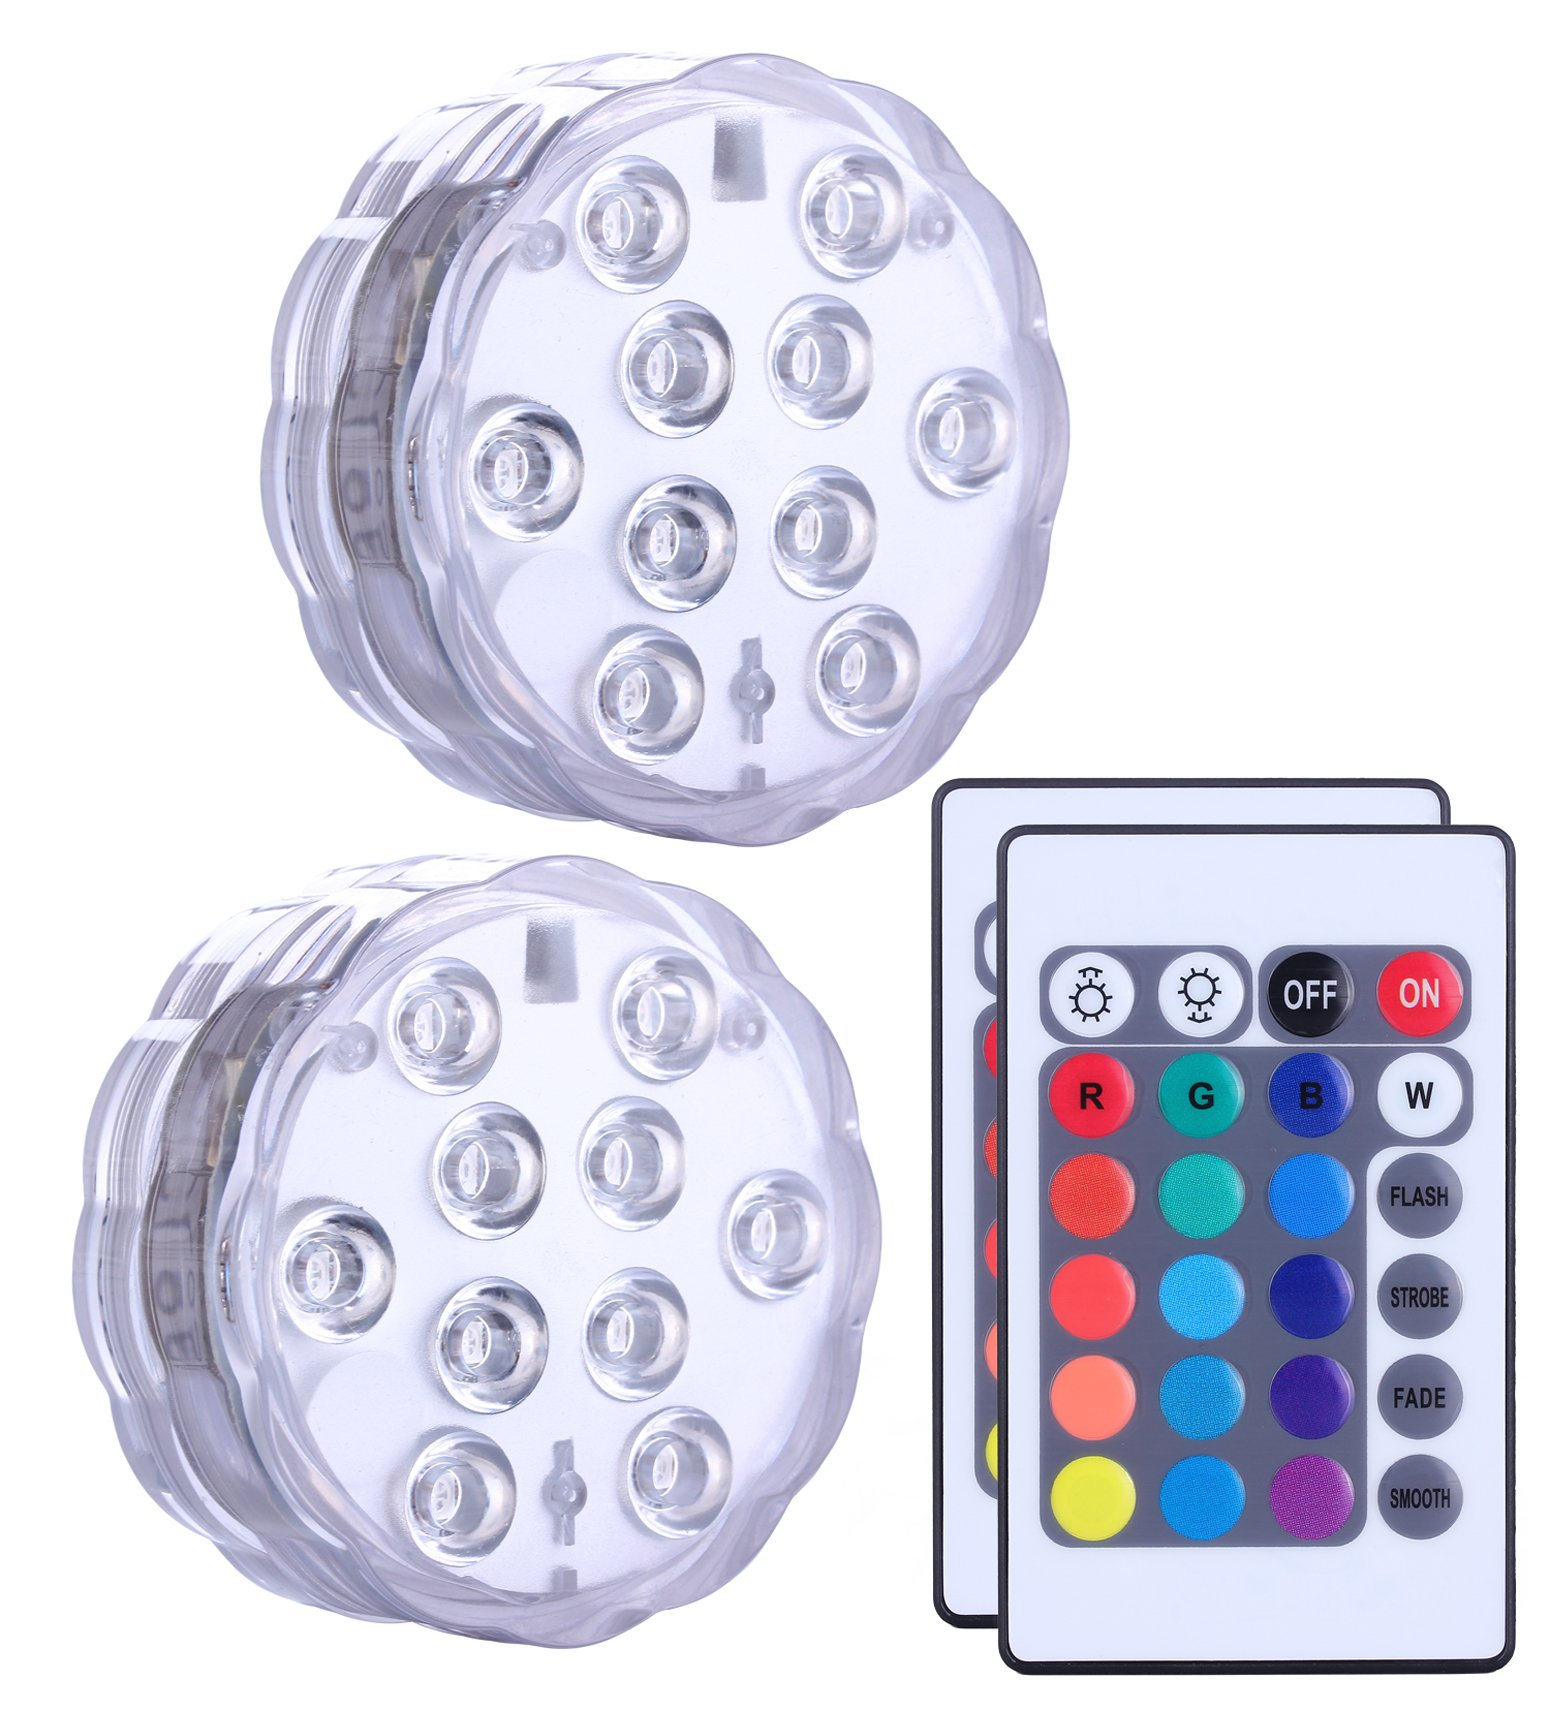 2pcs Swimming Pool Light Rgb Led Bulb Submersible Underwater Led Lights For Pond 711099859157 Ebay